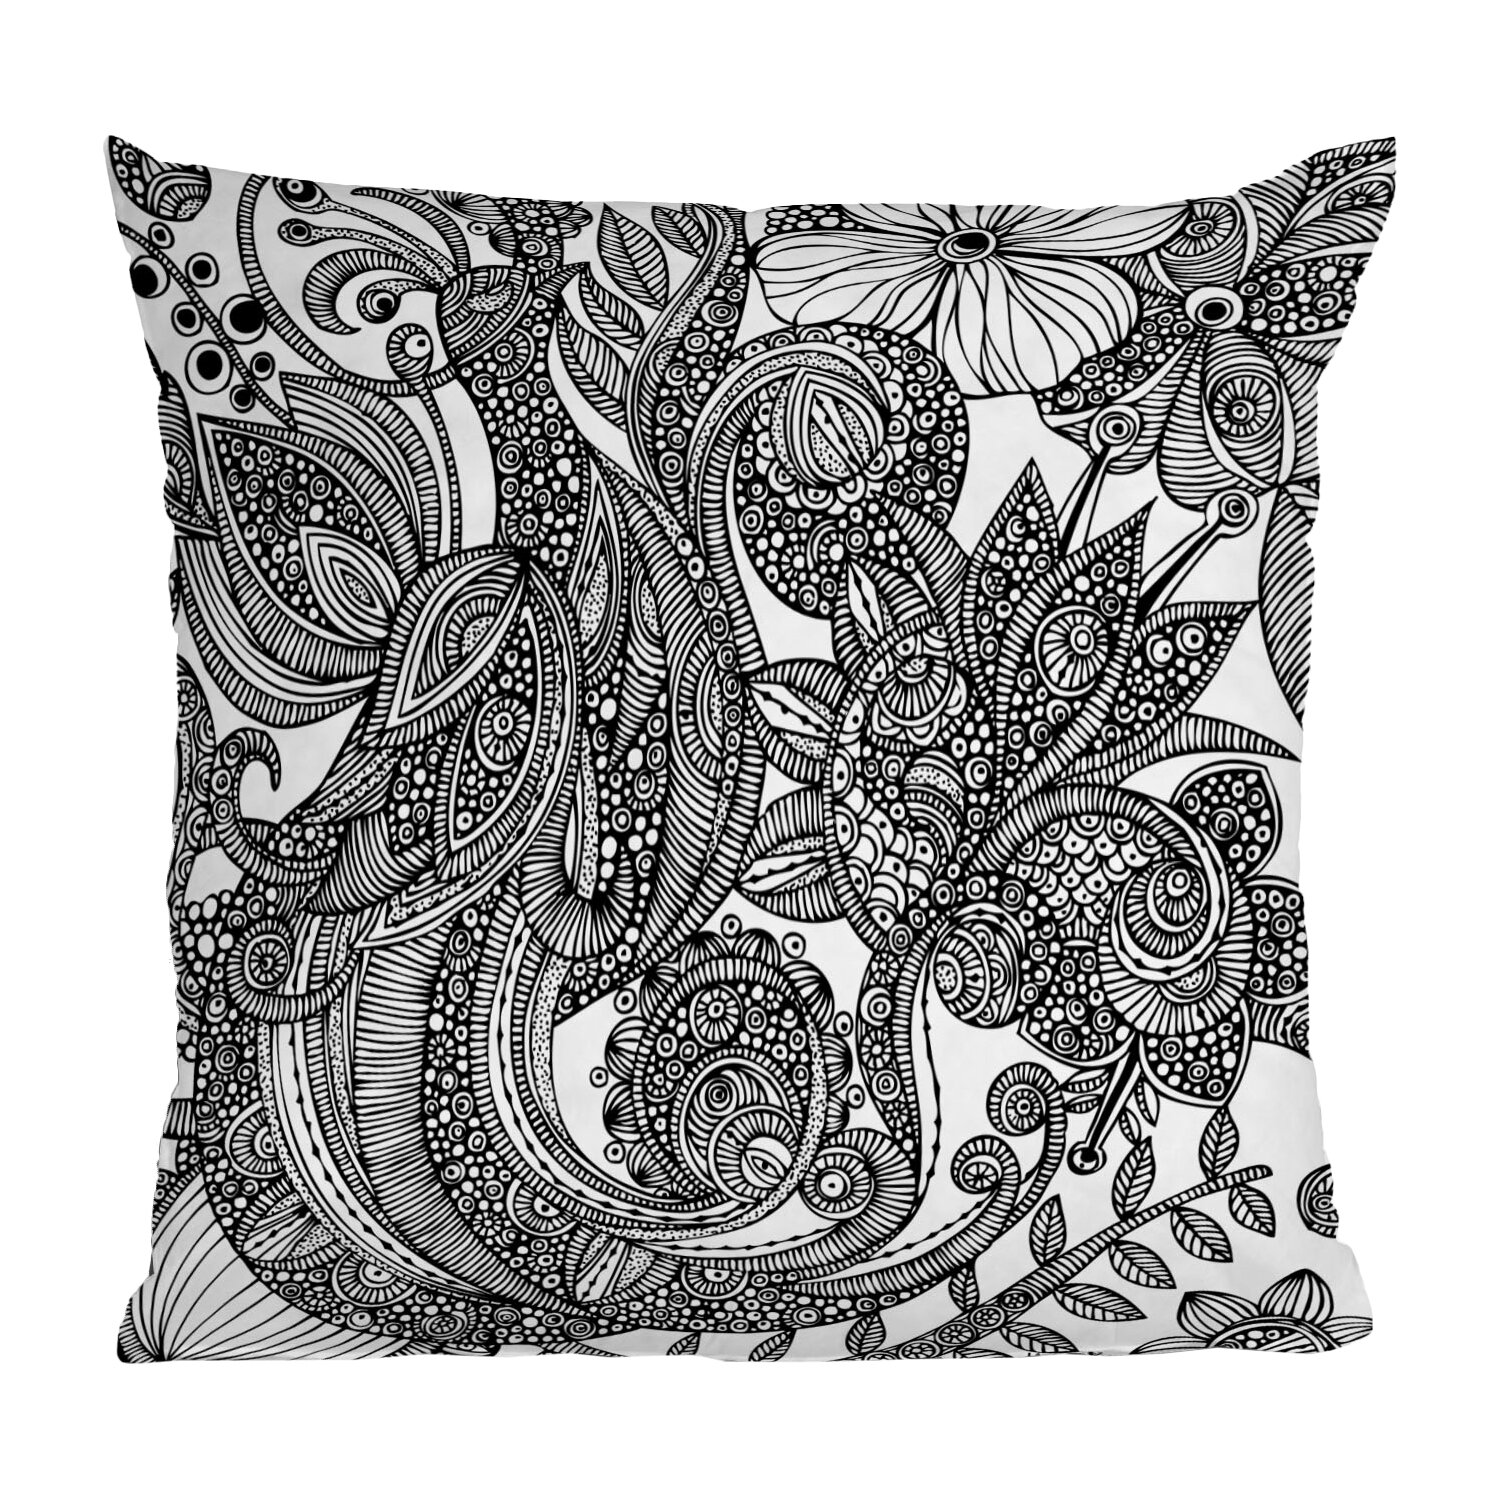 DENY Designs Valentina Ramos Bird Throw Pillow & Reviews Wayfair